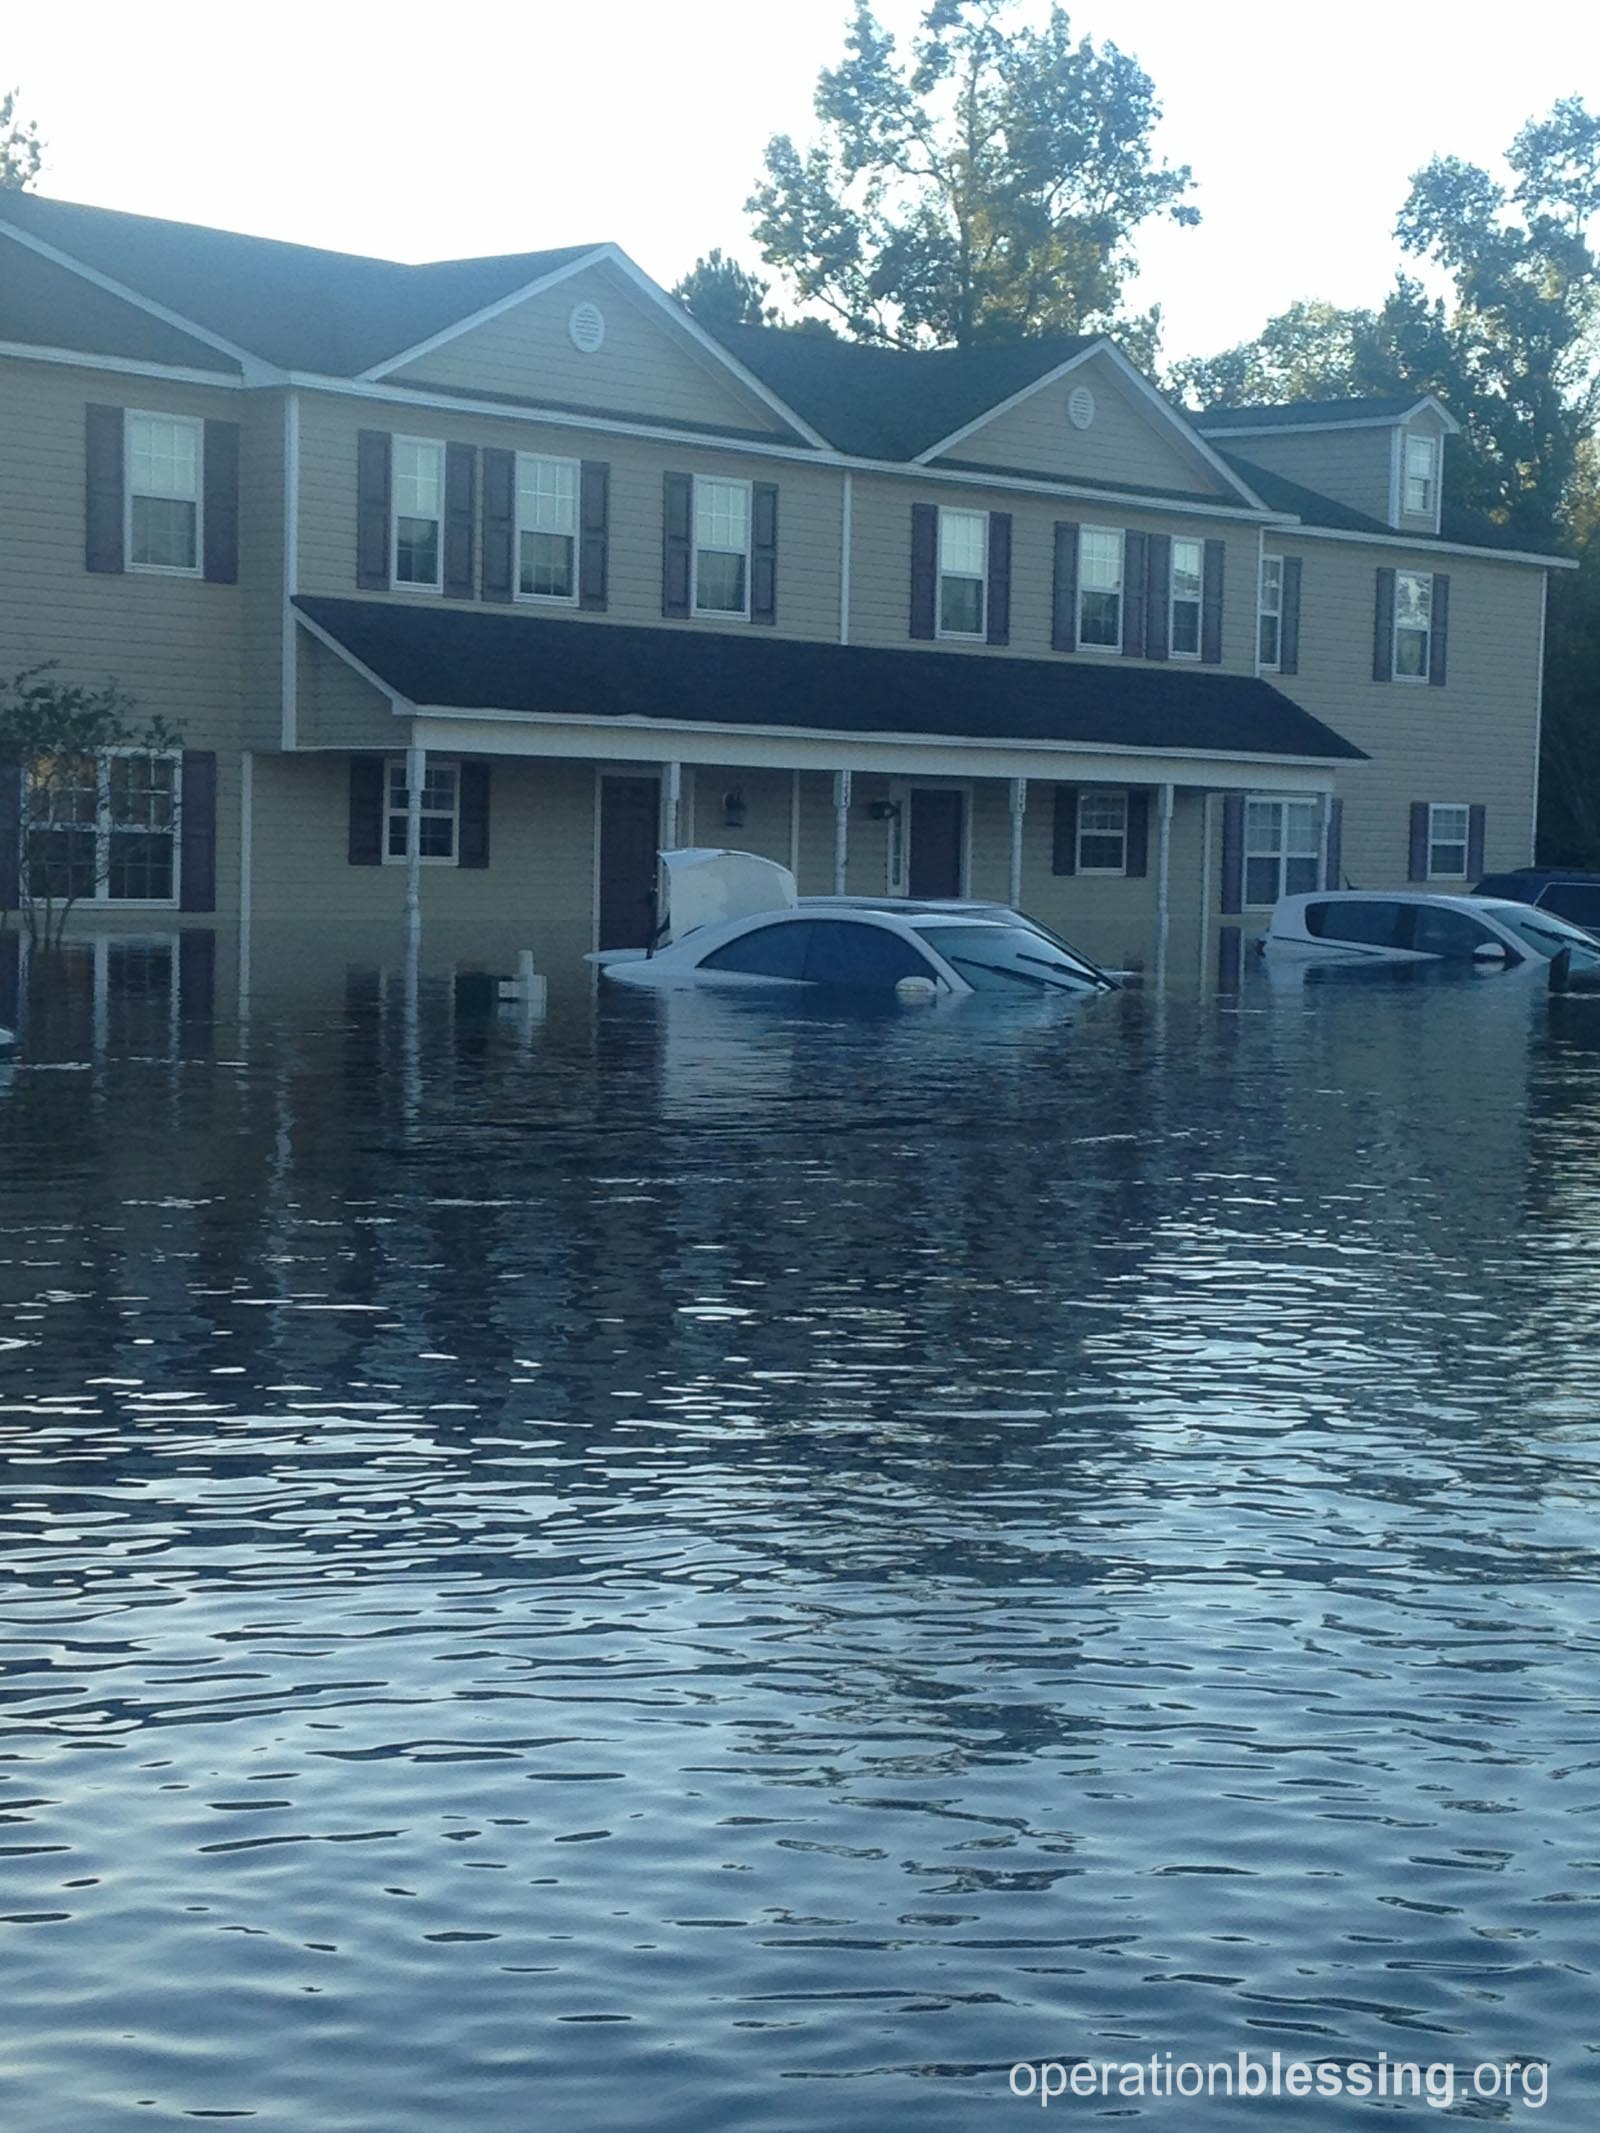 The floodwaters in her neighborhood.